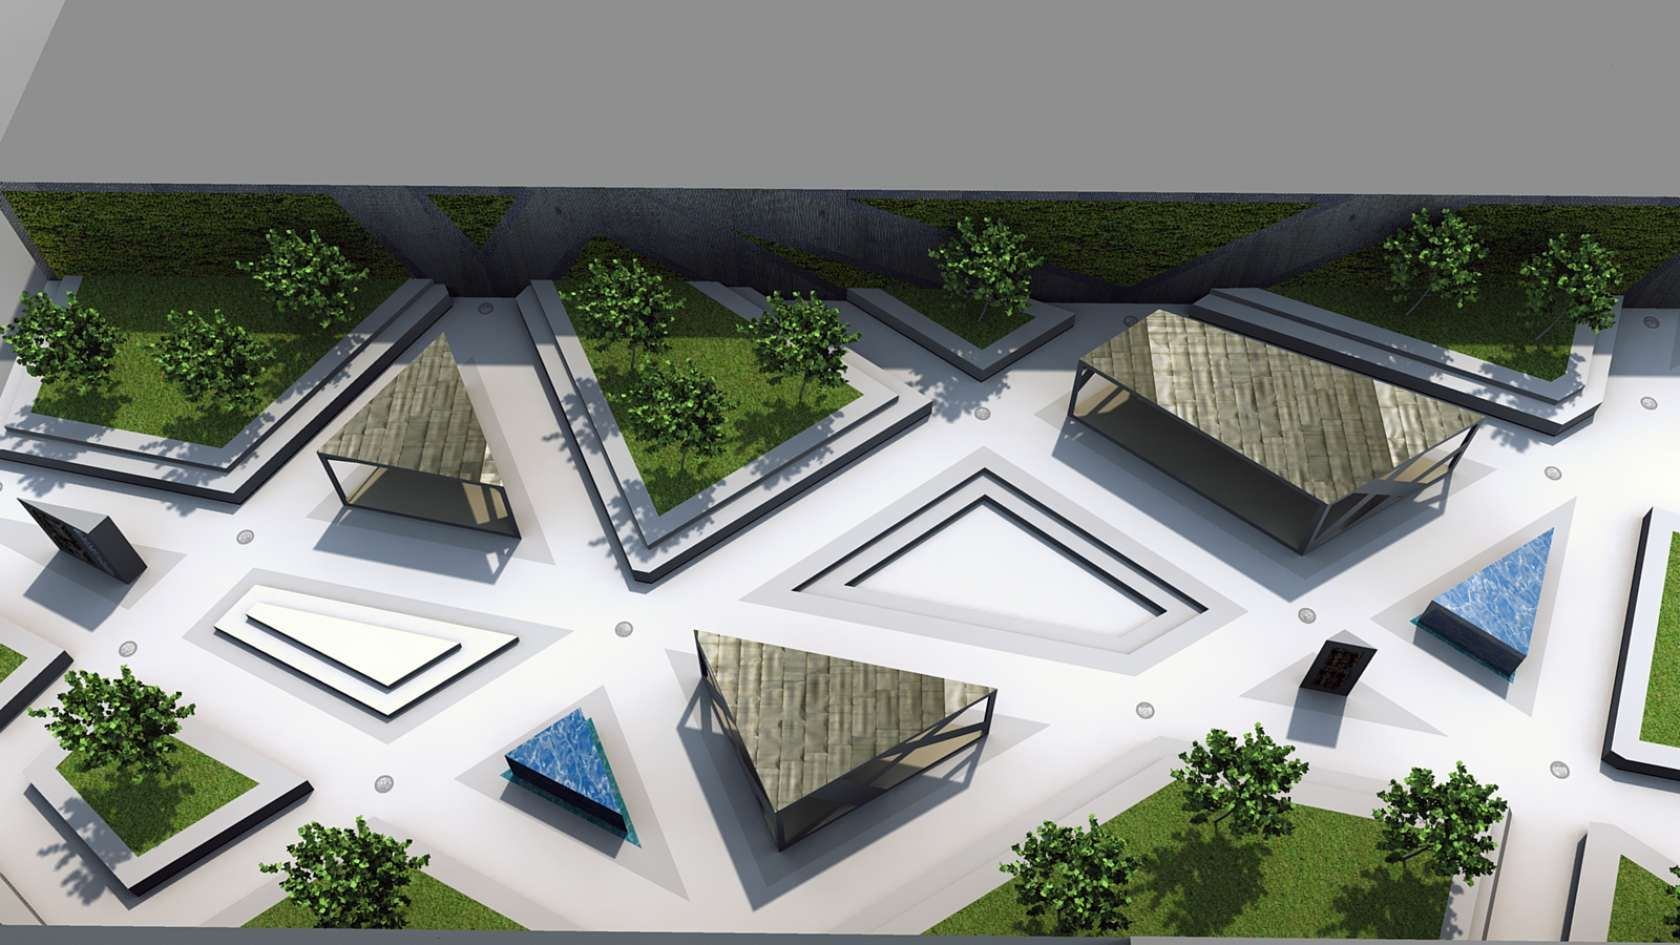 Design of car parking - 1 The Competition Was To Come Up With An Idea For Embassy Park